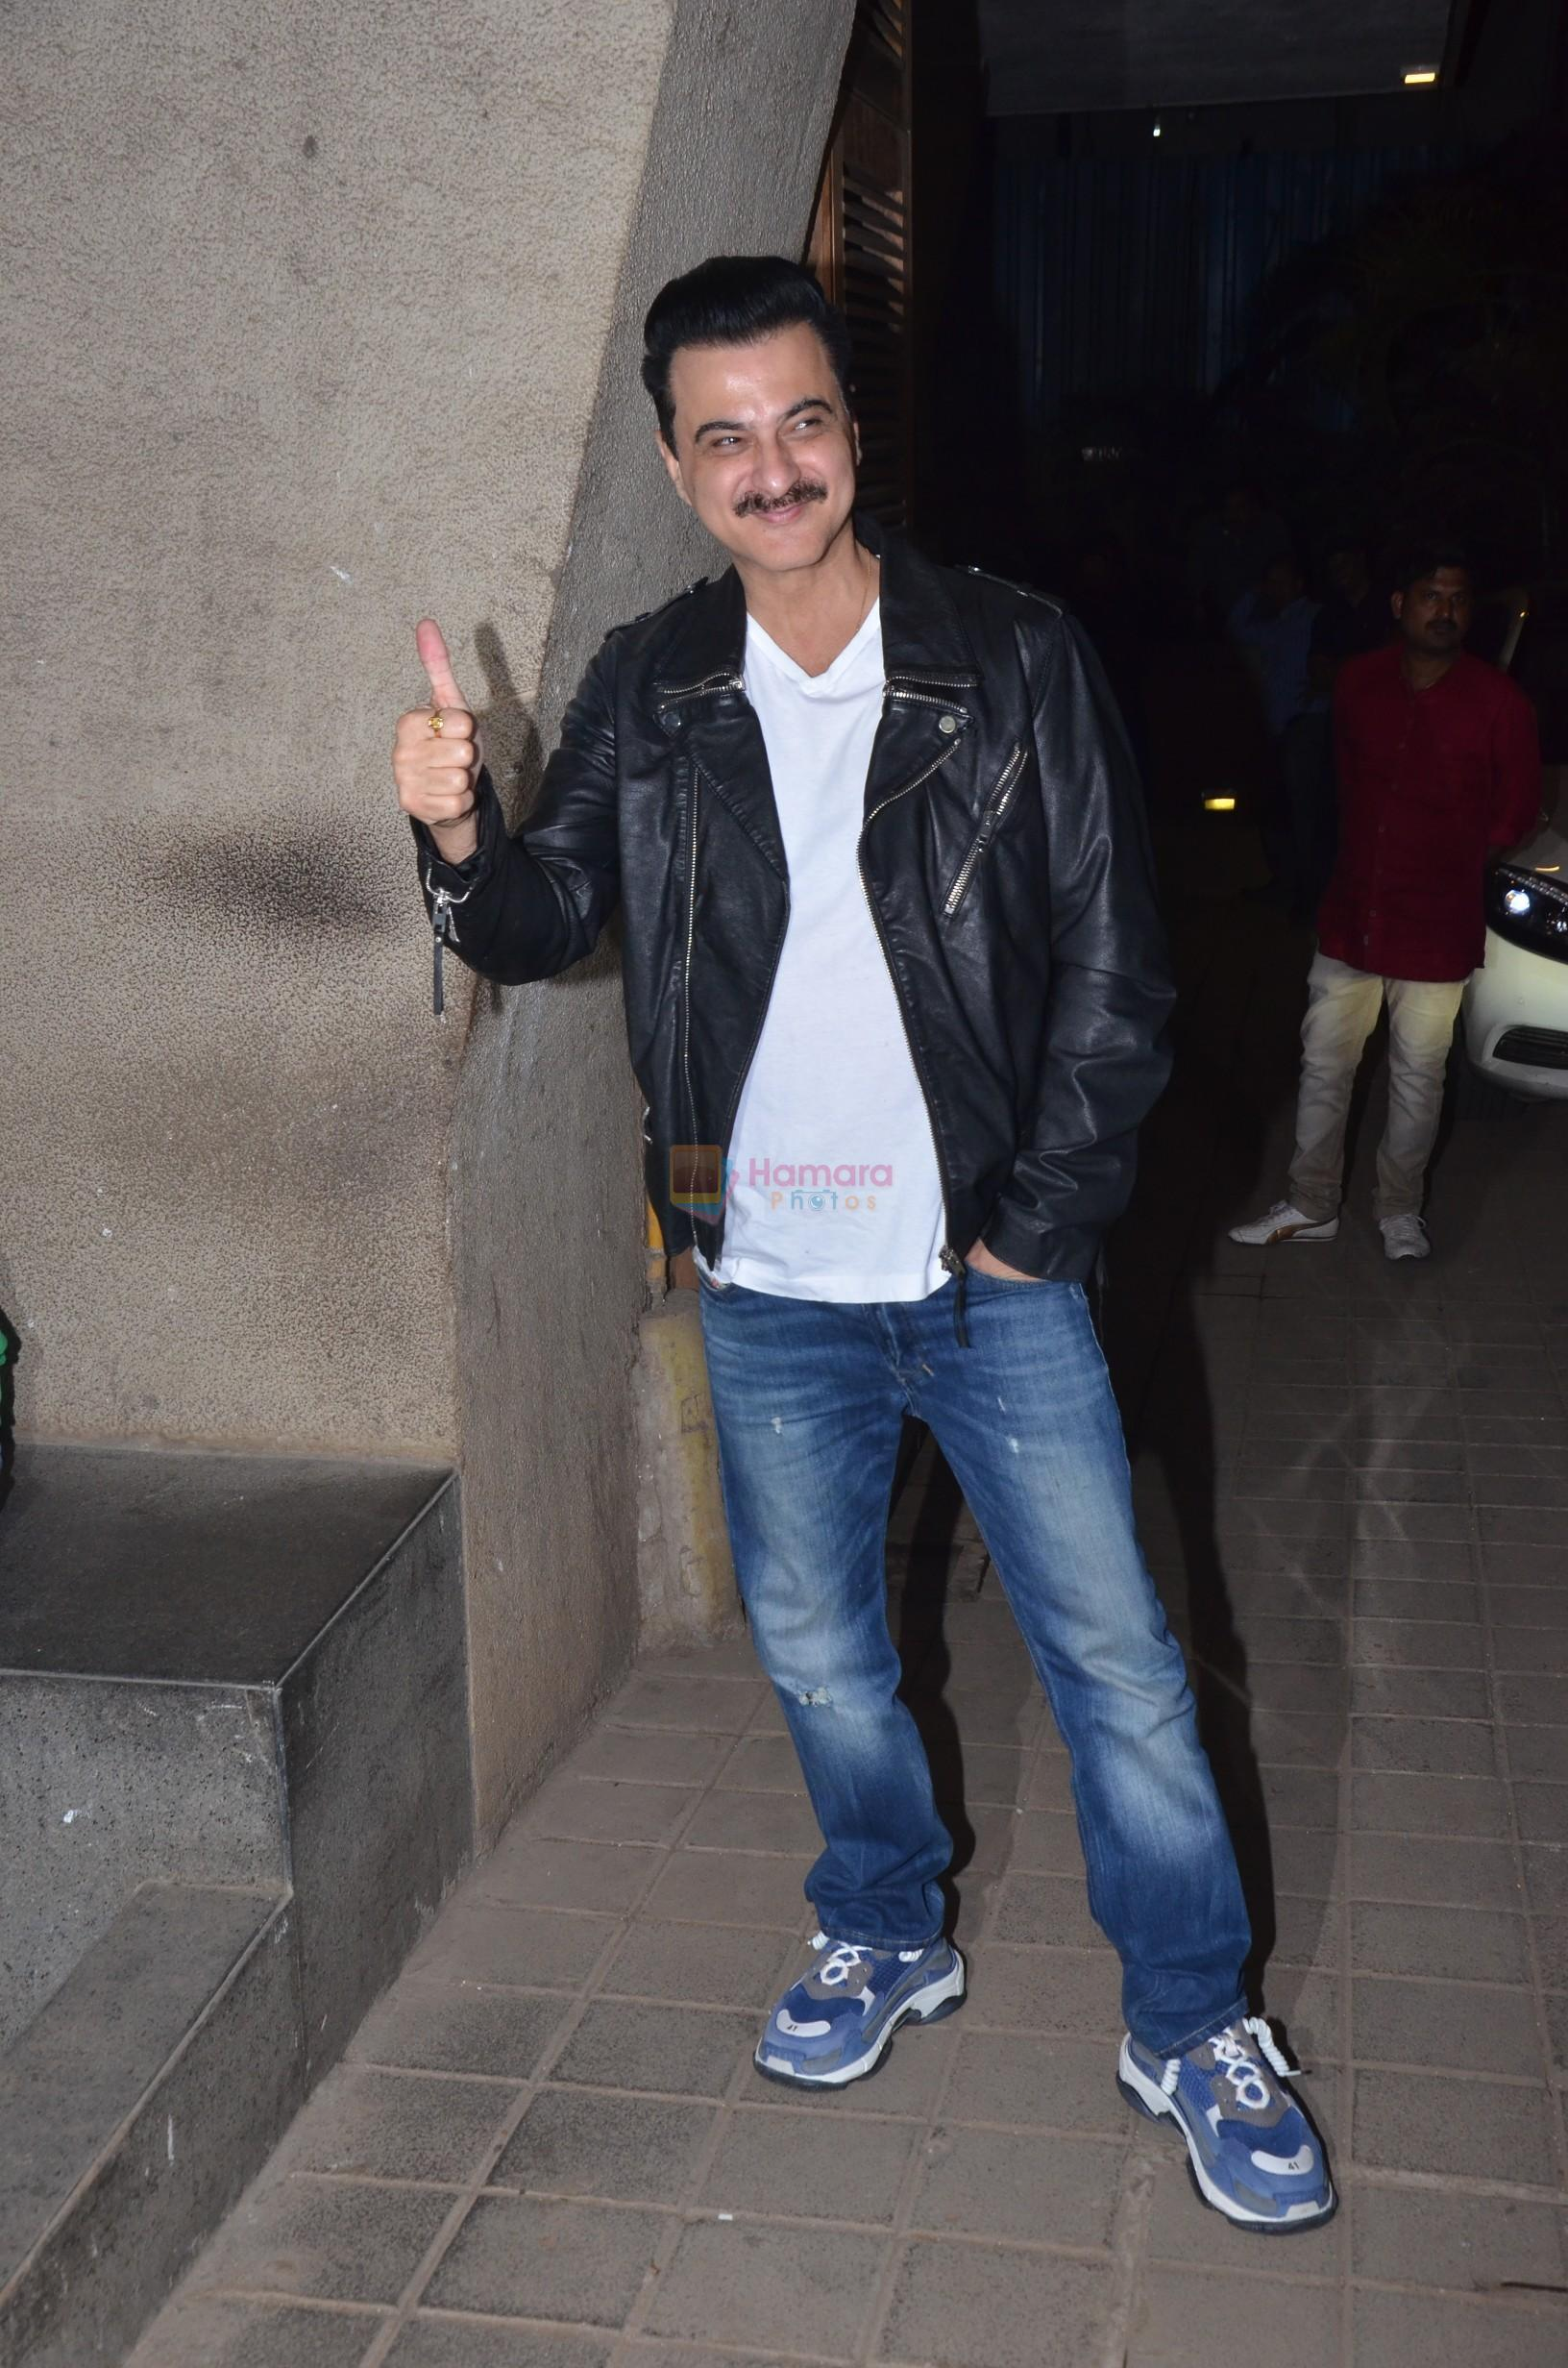 Sanjay Kapoor at Punit Malhotra's Party in Bandra on 20th Jan 2019